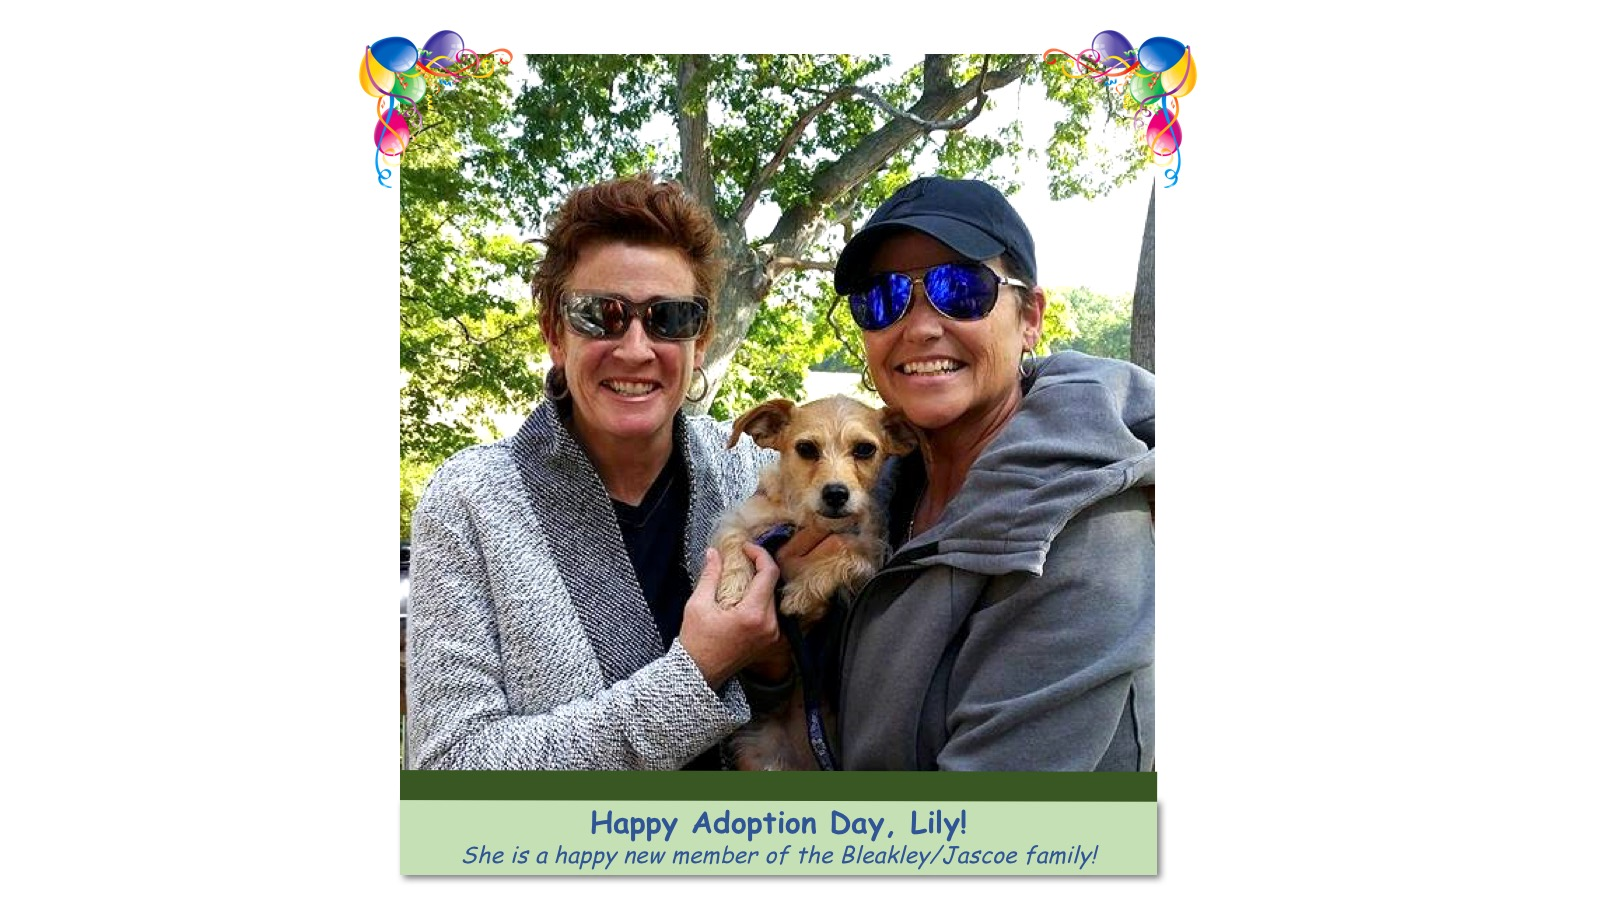 Lily_Adoption_photo.jpg